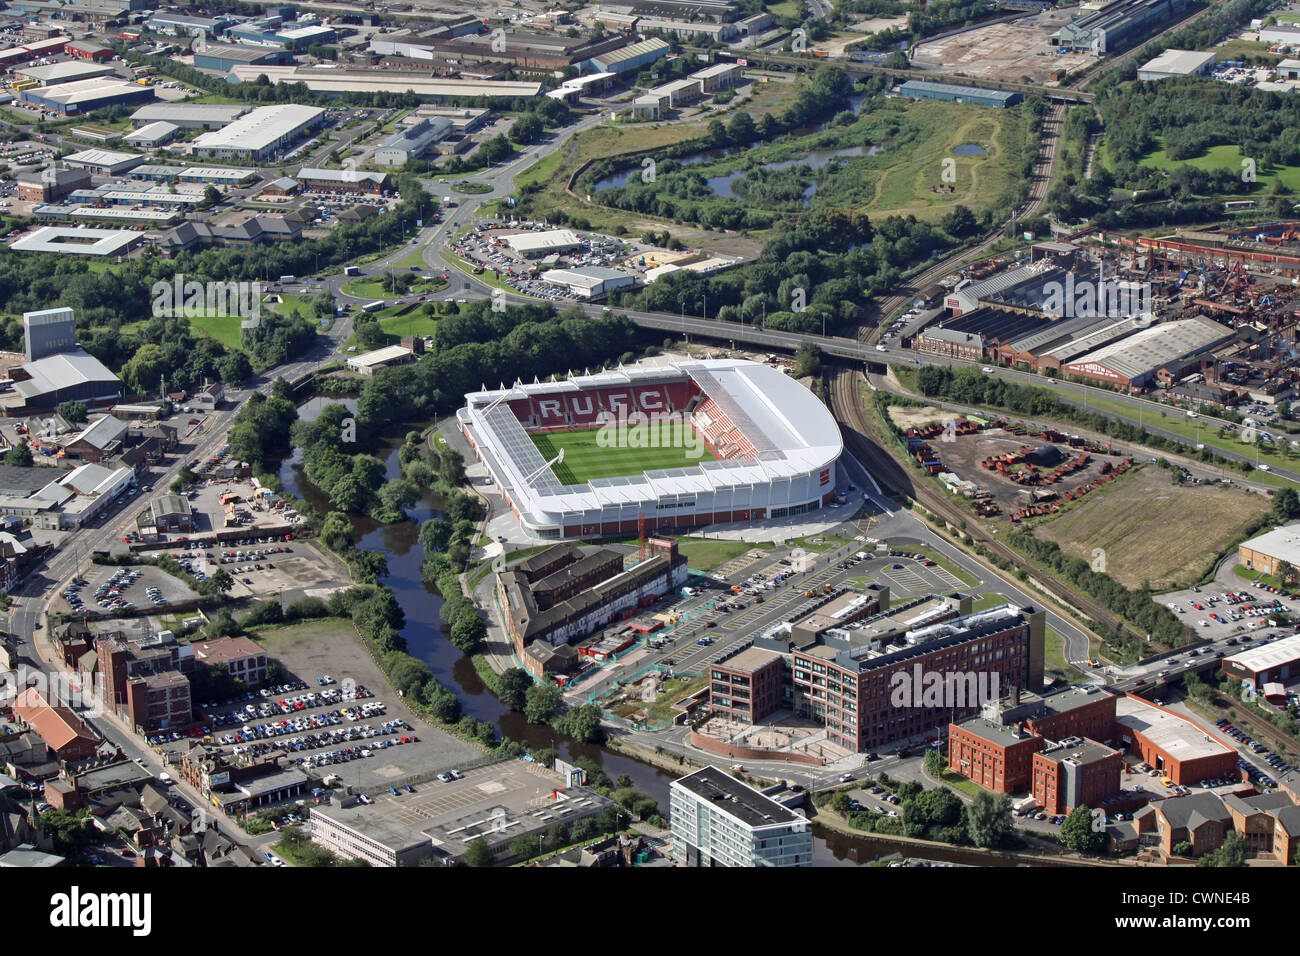 aerial view of Rotherham United football ground, South Yorkshire - Stock Image